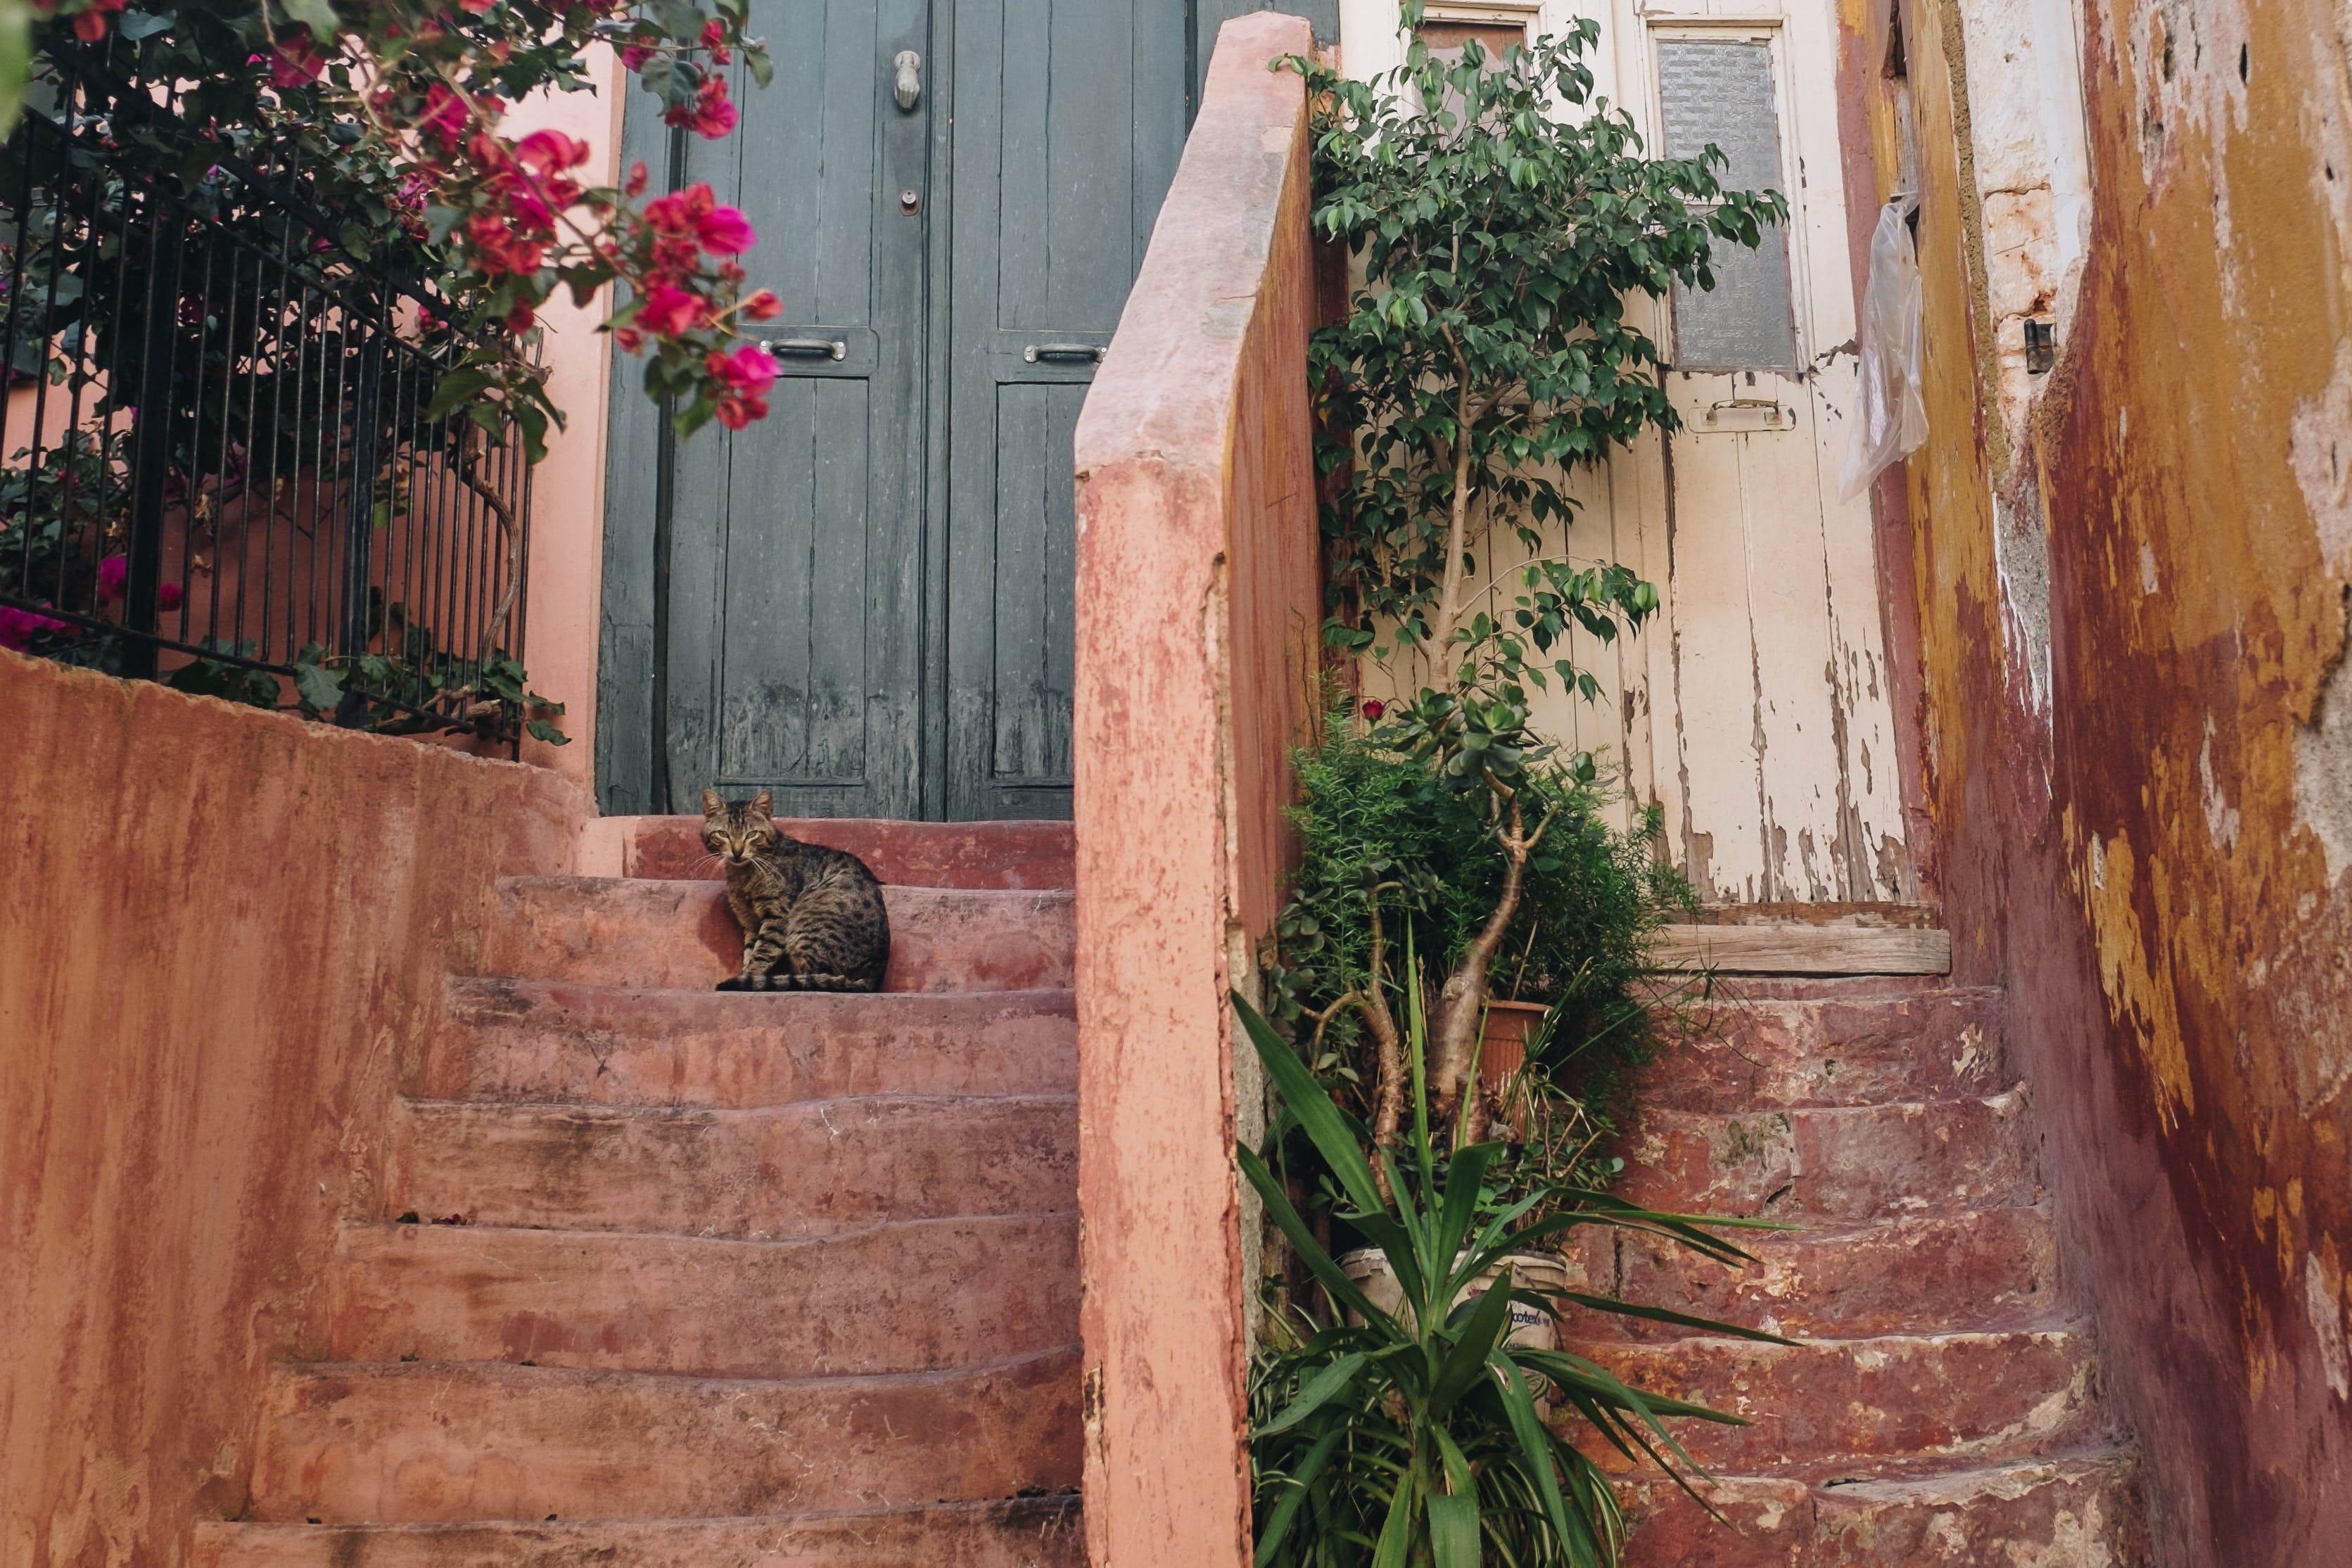 Brown Tabby Cat on Brown Stairway With Pink Bougainvillea